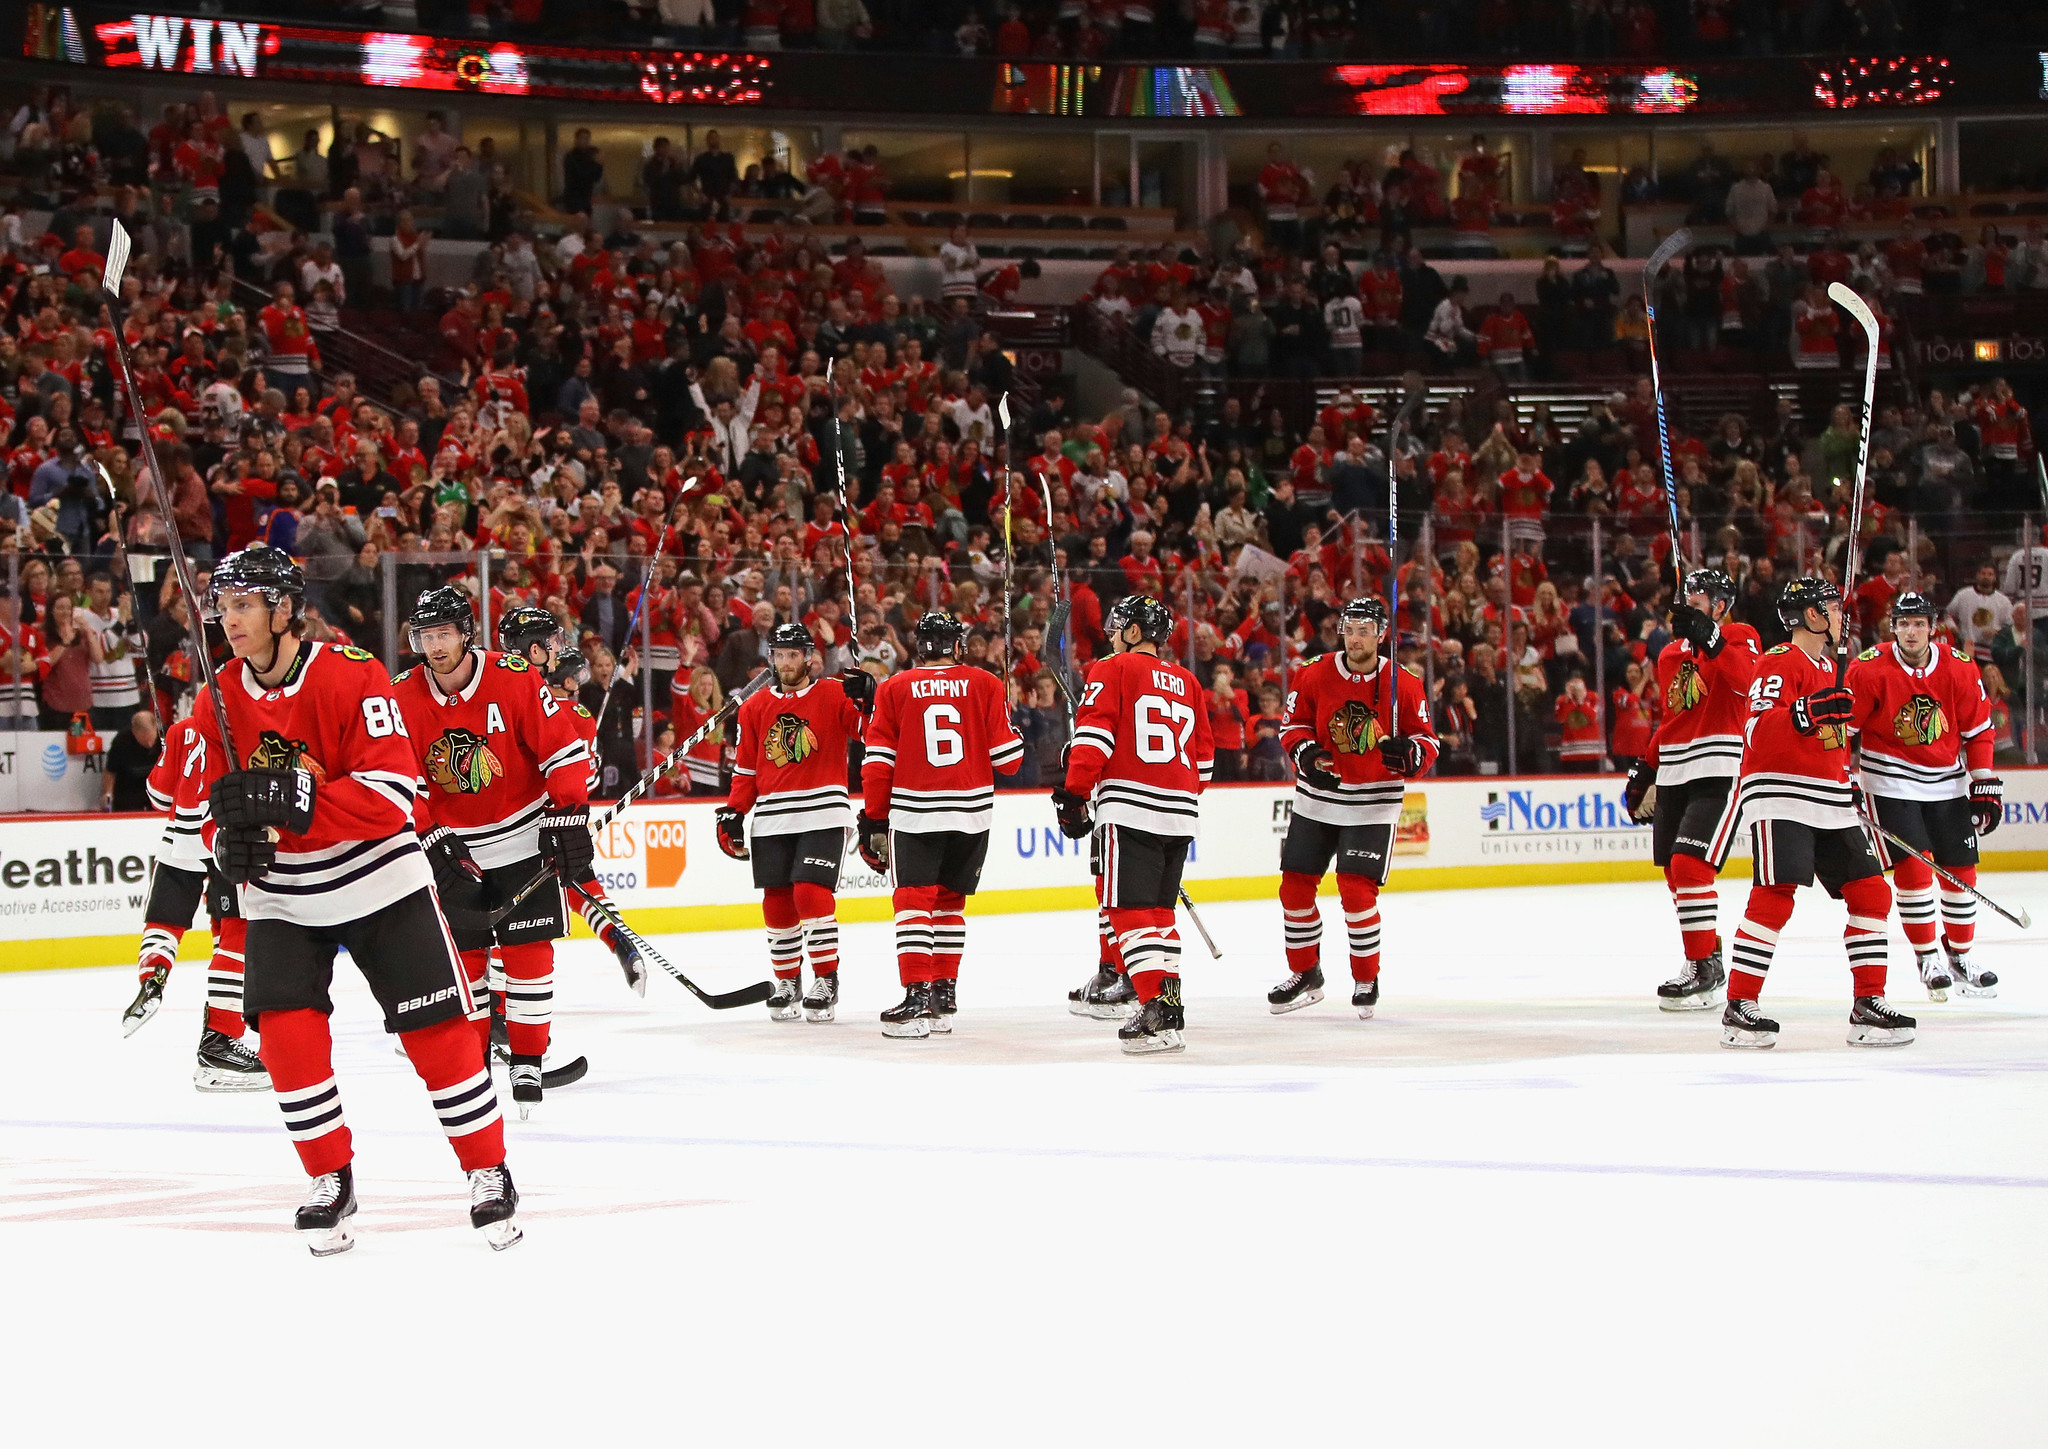 Ct-mixing-up-power-play-blackhawks-notes-spt-1018-20171017